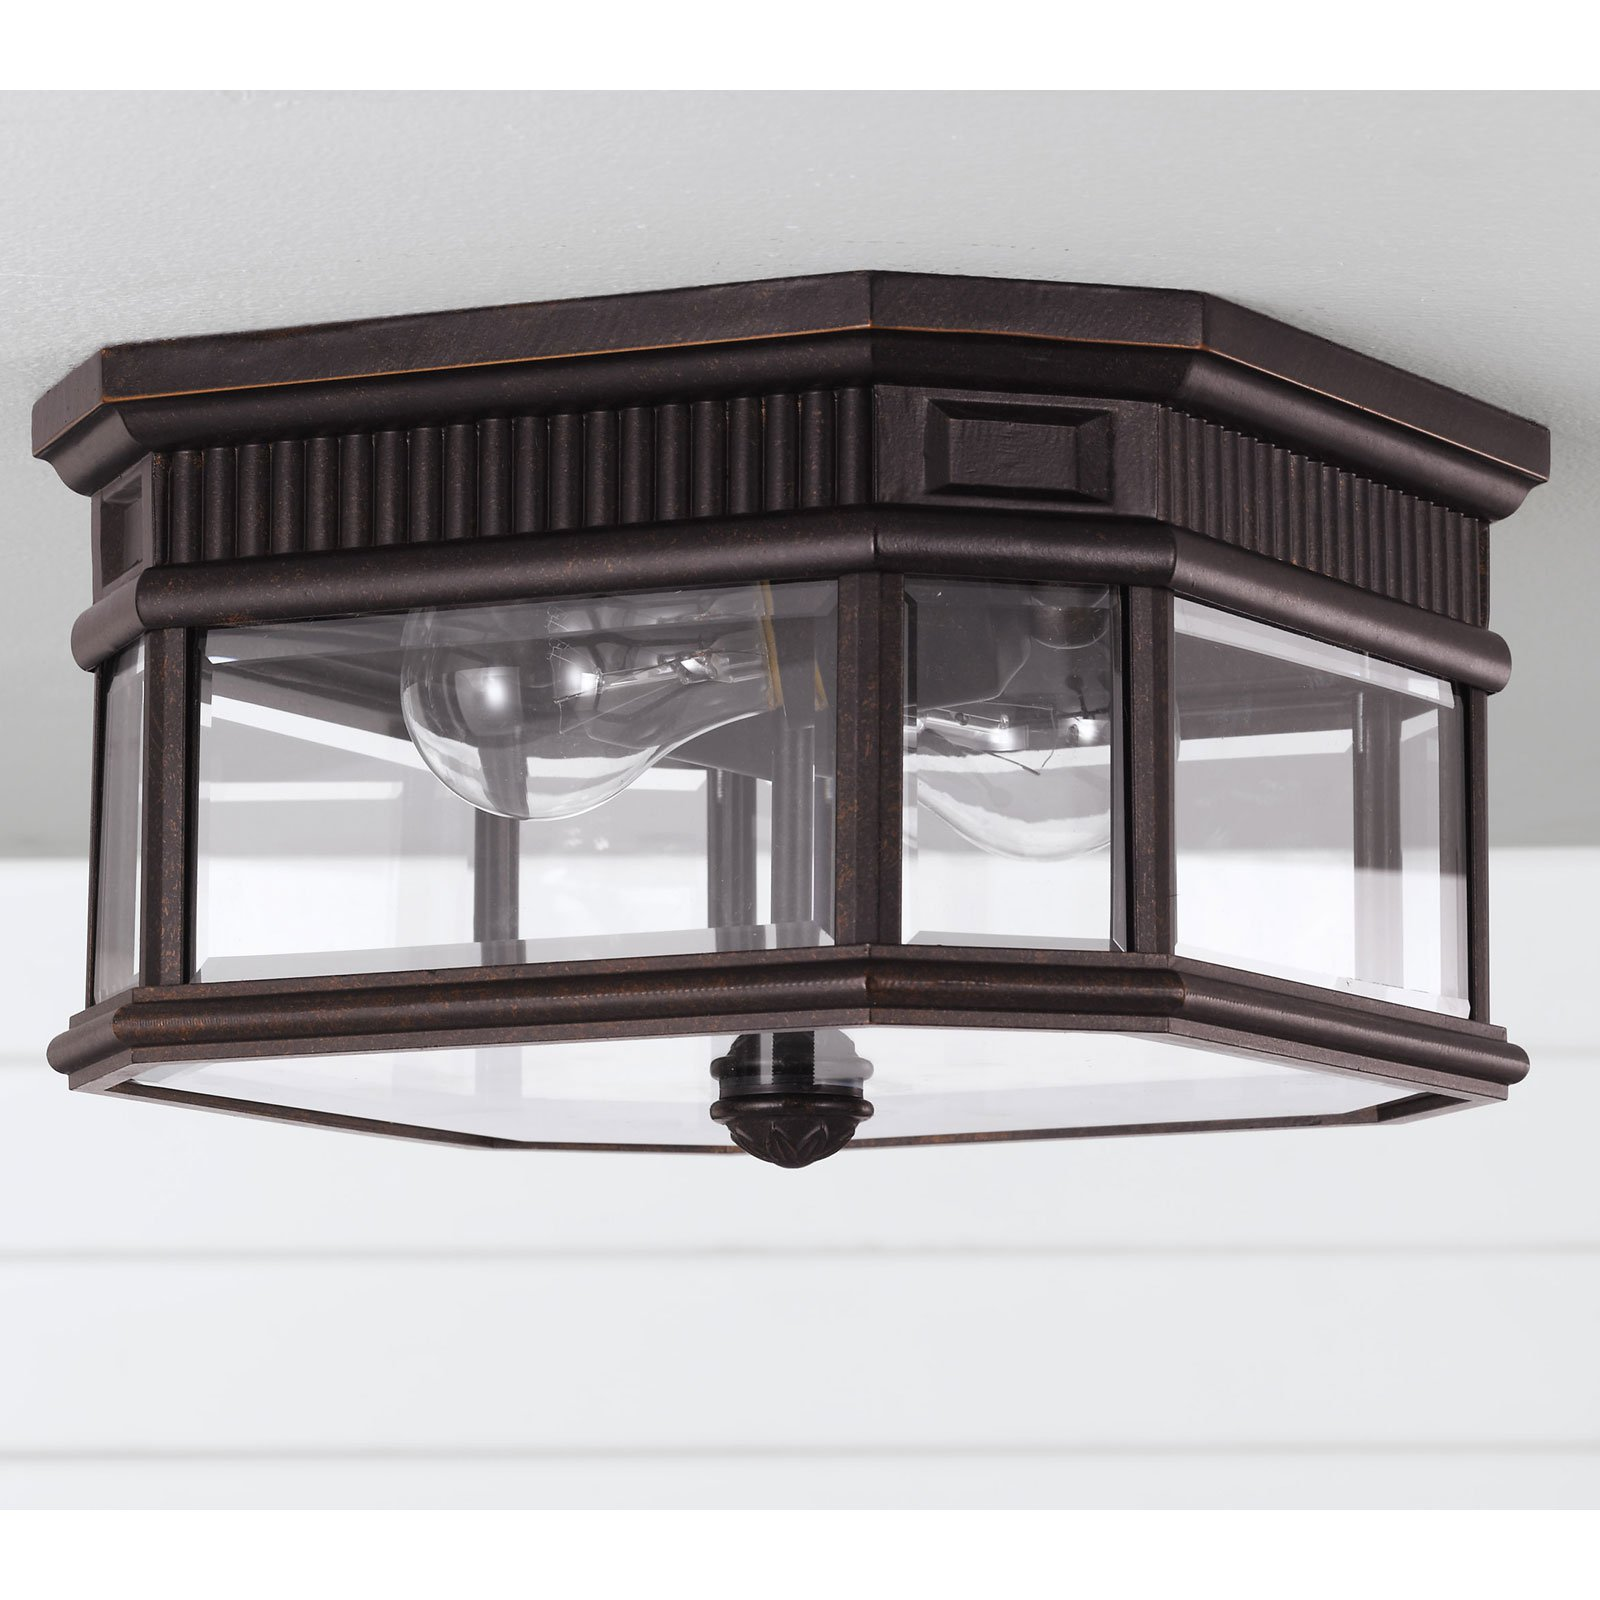 Feiss Cotswold Lane Outdoor Ceiling Light - 6.5H in. Grecian Bronze